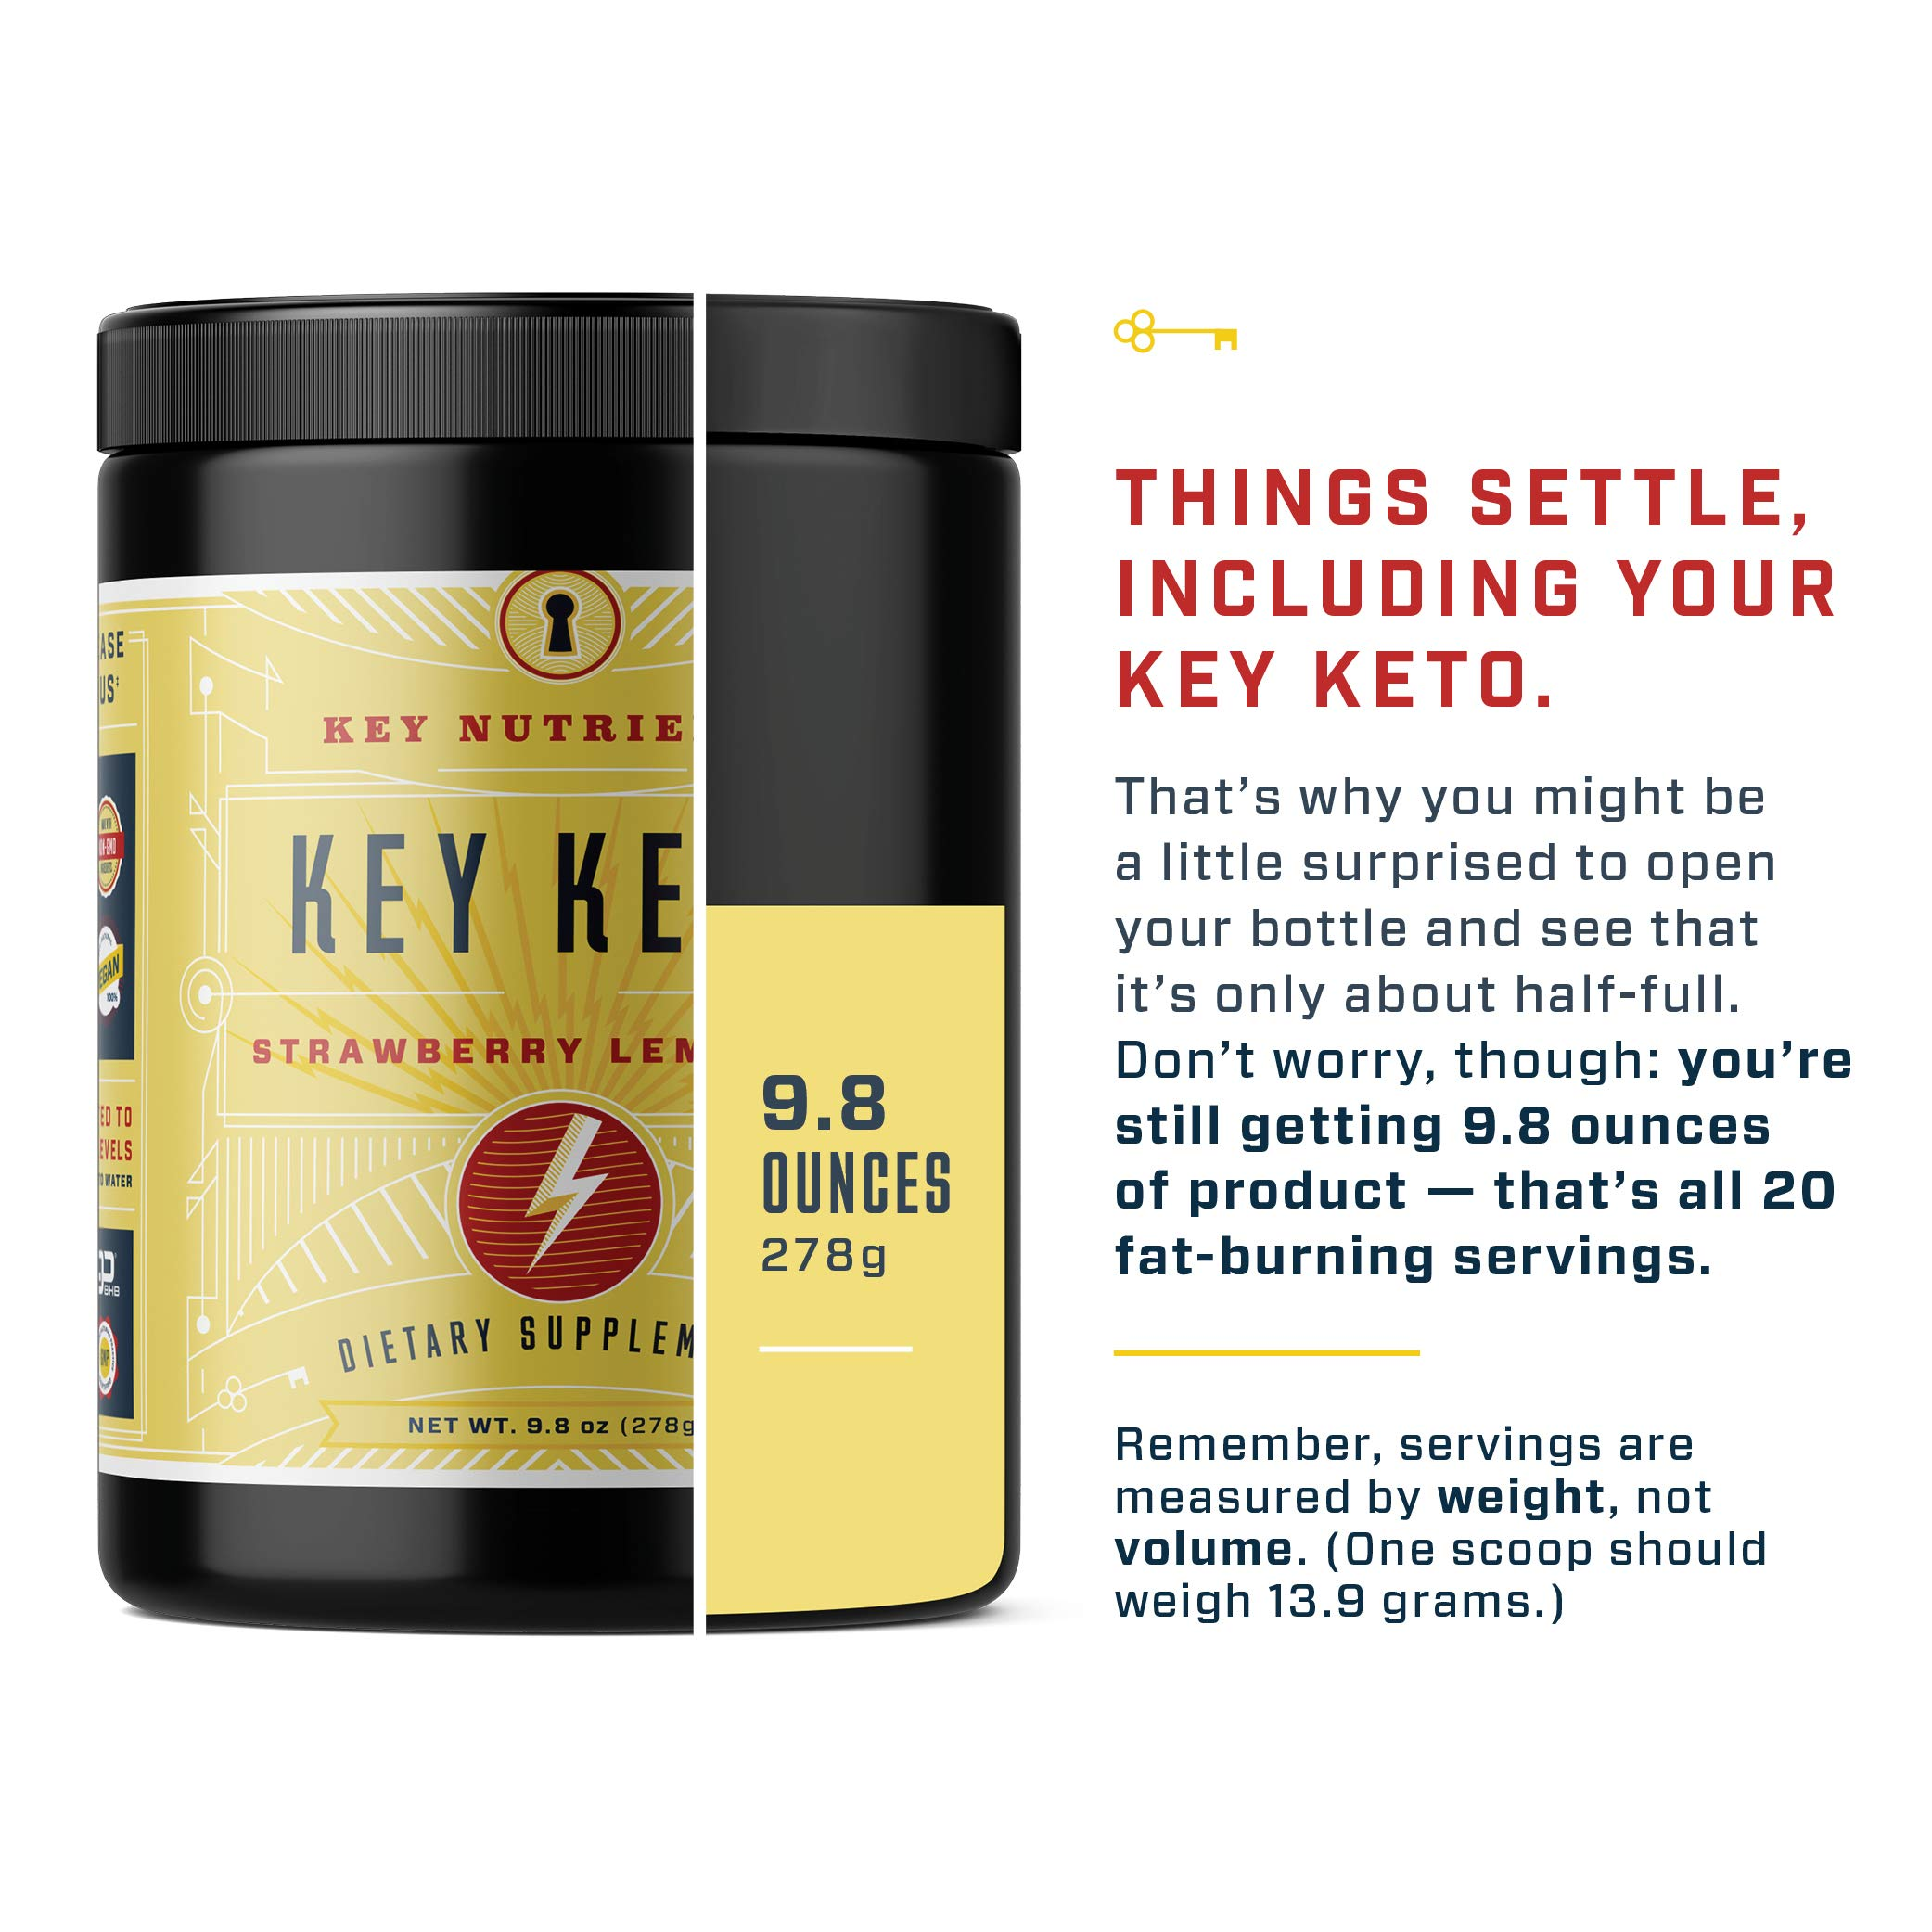 Exogenous Ketone Supplement, KEY KETO: Patented BHB Salts (Beta-Hydroxybutyrate) - Formulated for Ketosis, to Burn Fat, Increase Energy and Focus, Supports a Keto Diet. Strawberry Lemonade (278g) (20) by Key Nutrients (Image #5)